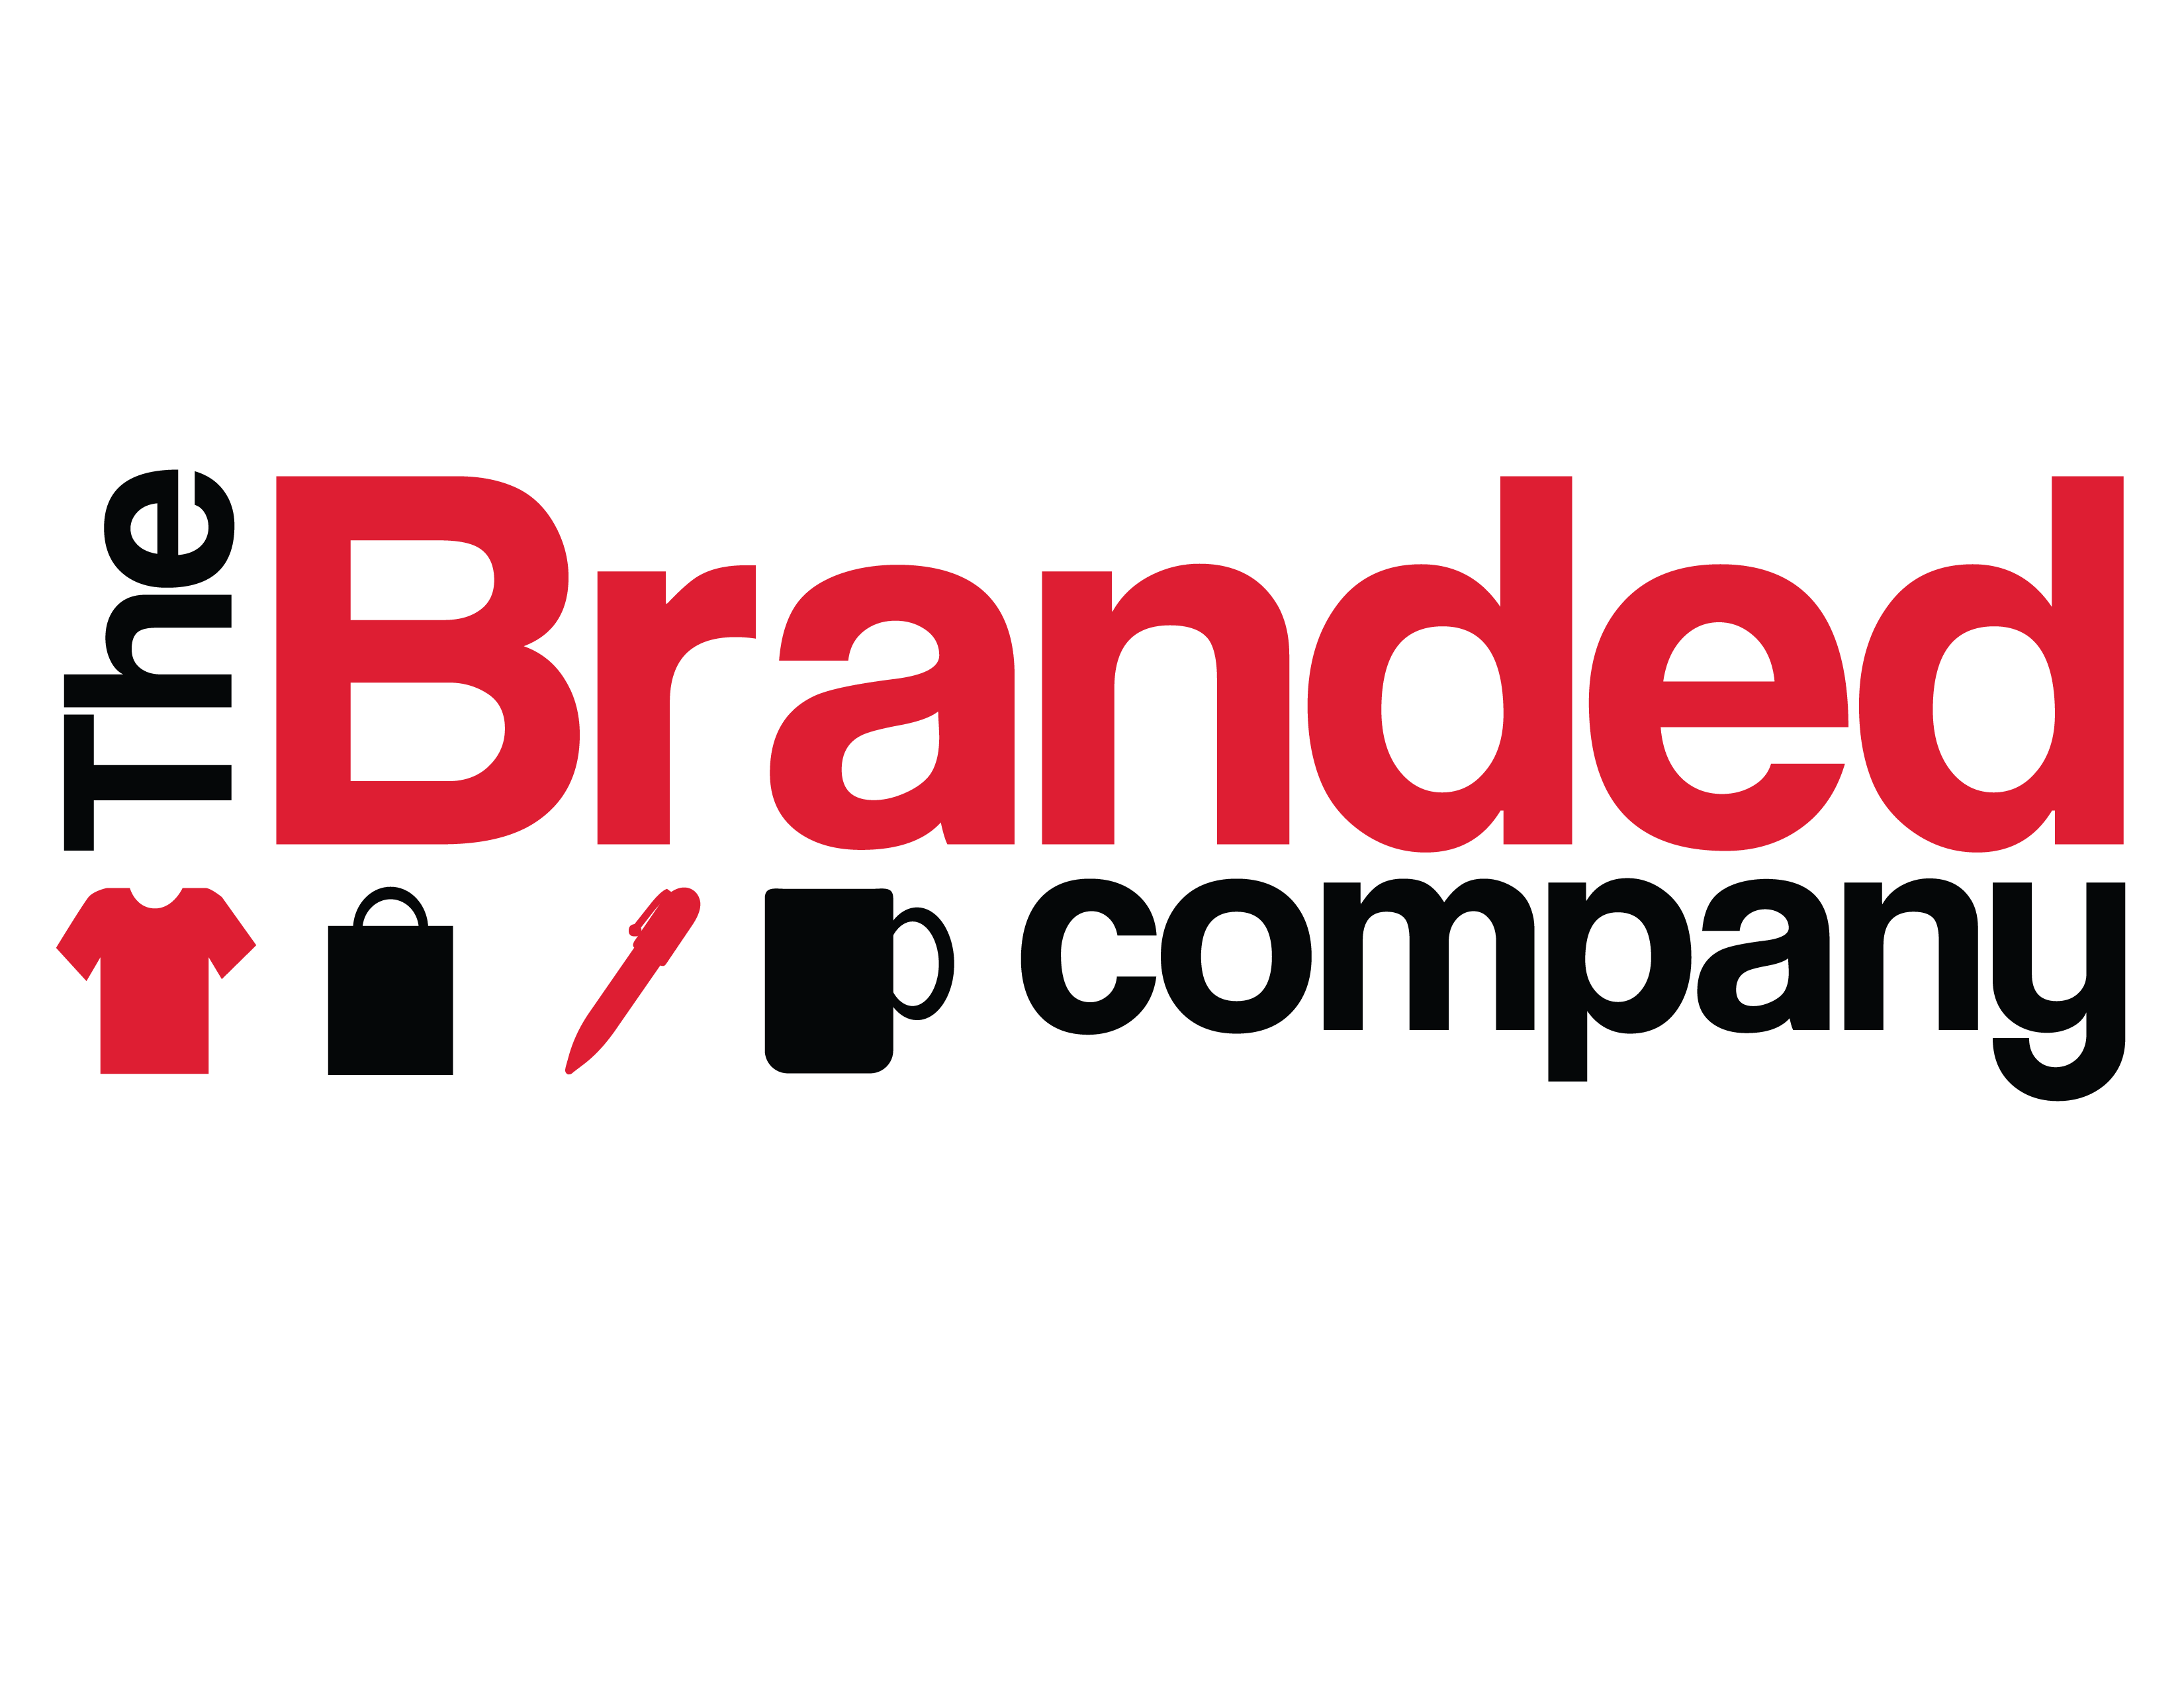 Read The Branded Company Reviews